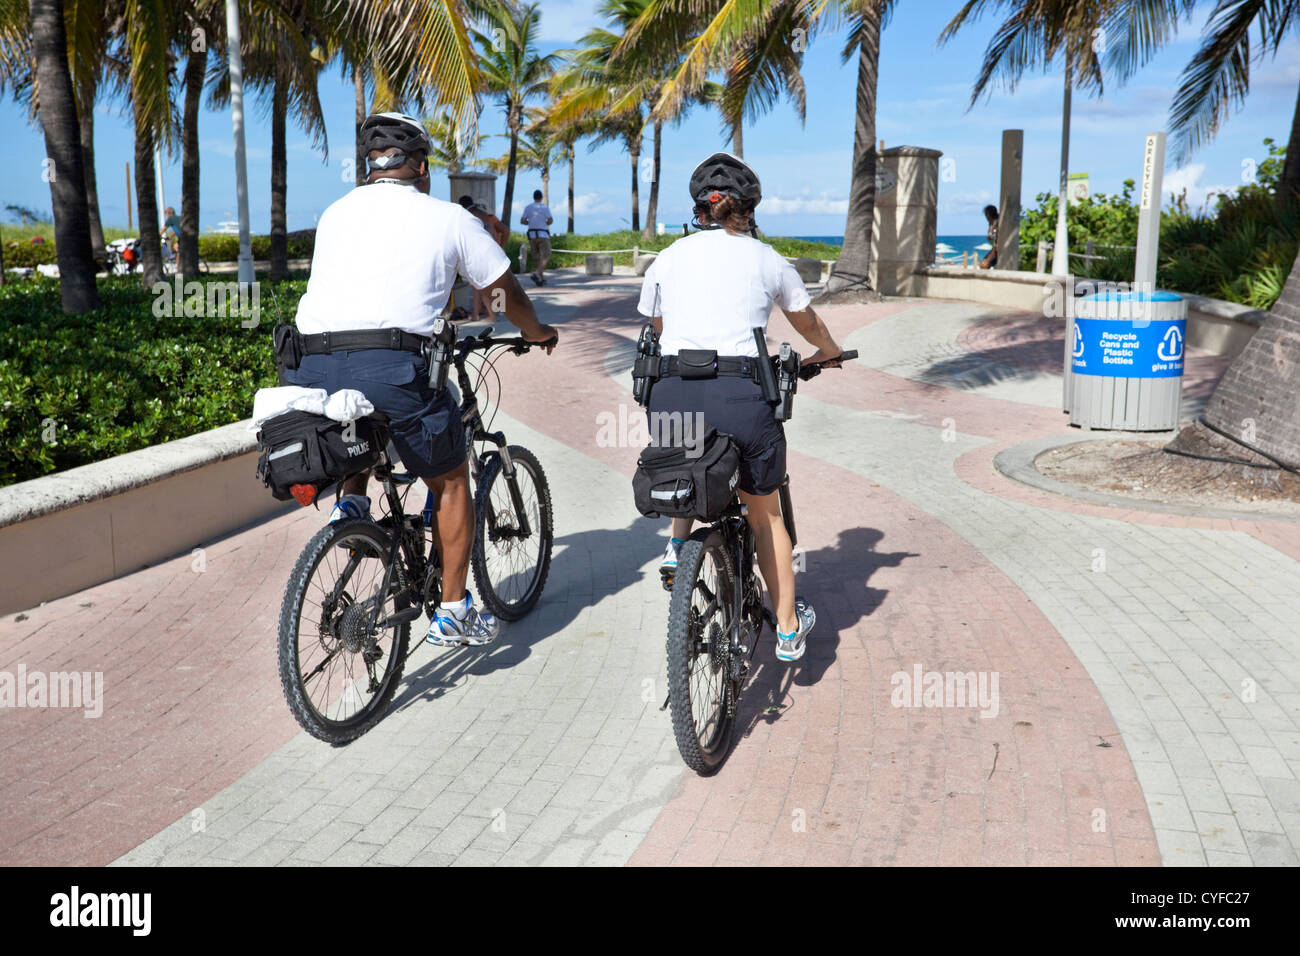 Rear view of two police officers on bicycle patrol along promenade, Miami Beach, Florida, USA. - Stock Image